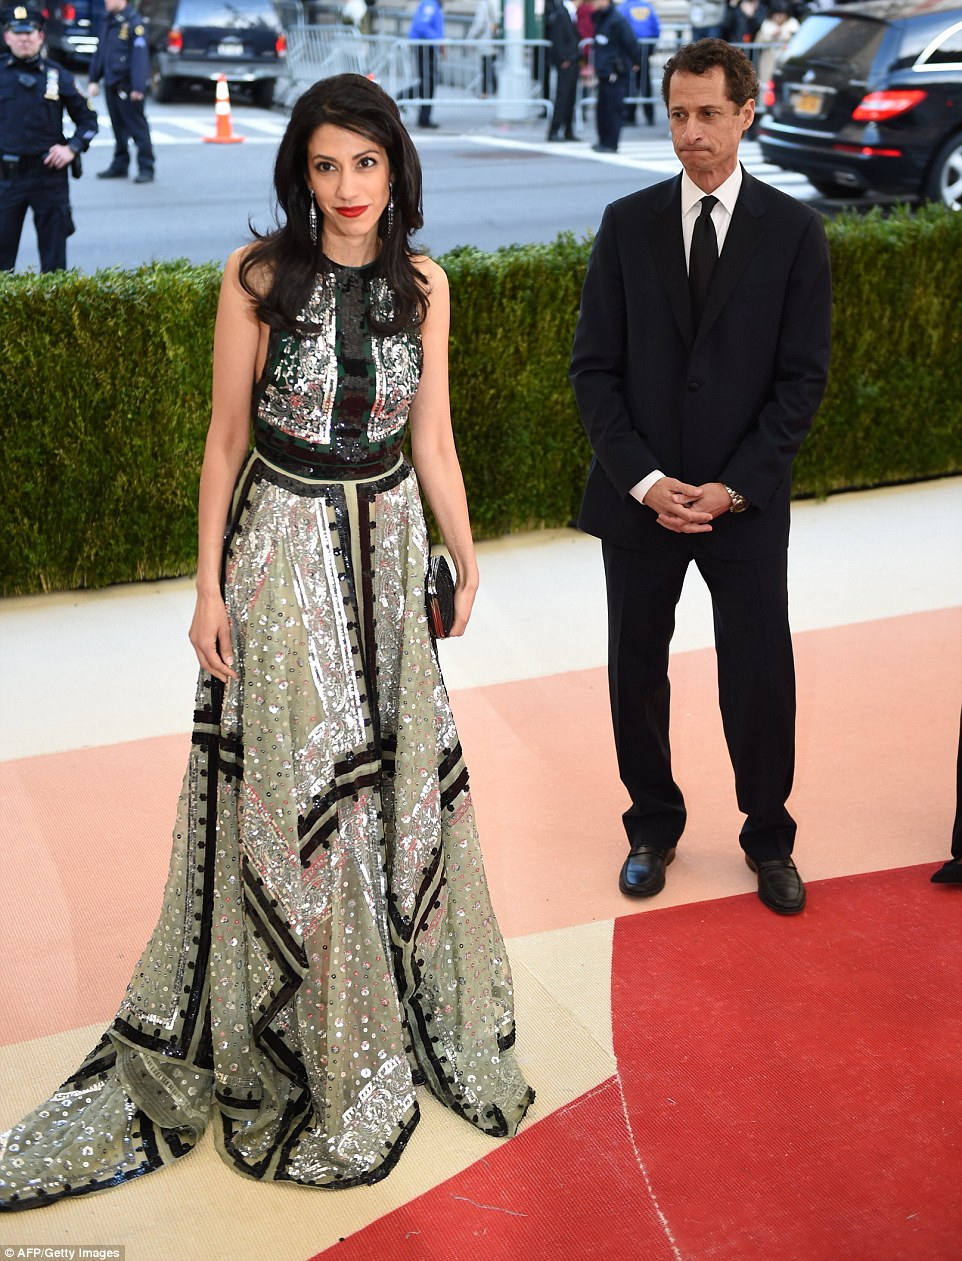 End of the road:Huma Abedin has revealed in a statement that she is separating from her husband Anthony Weiner in the wake of his latest sexting scandal (couple above in May at the Met ball)